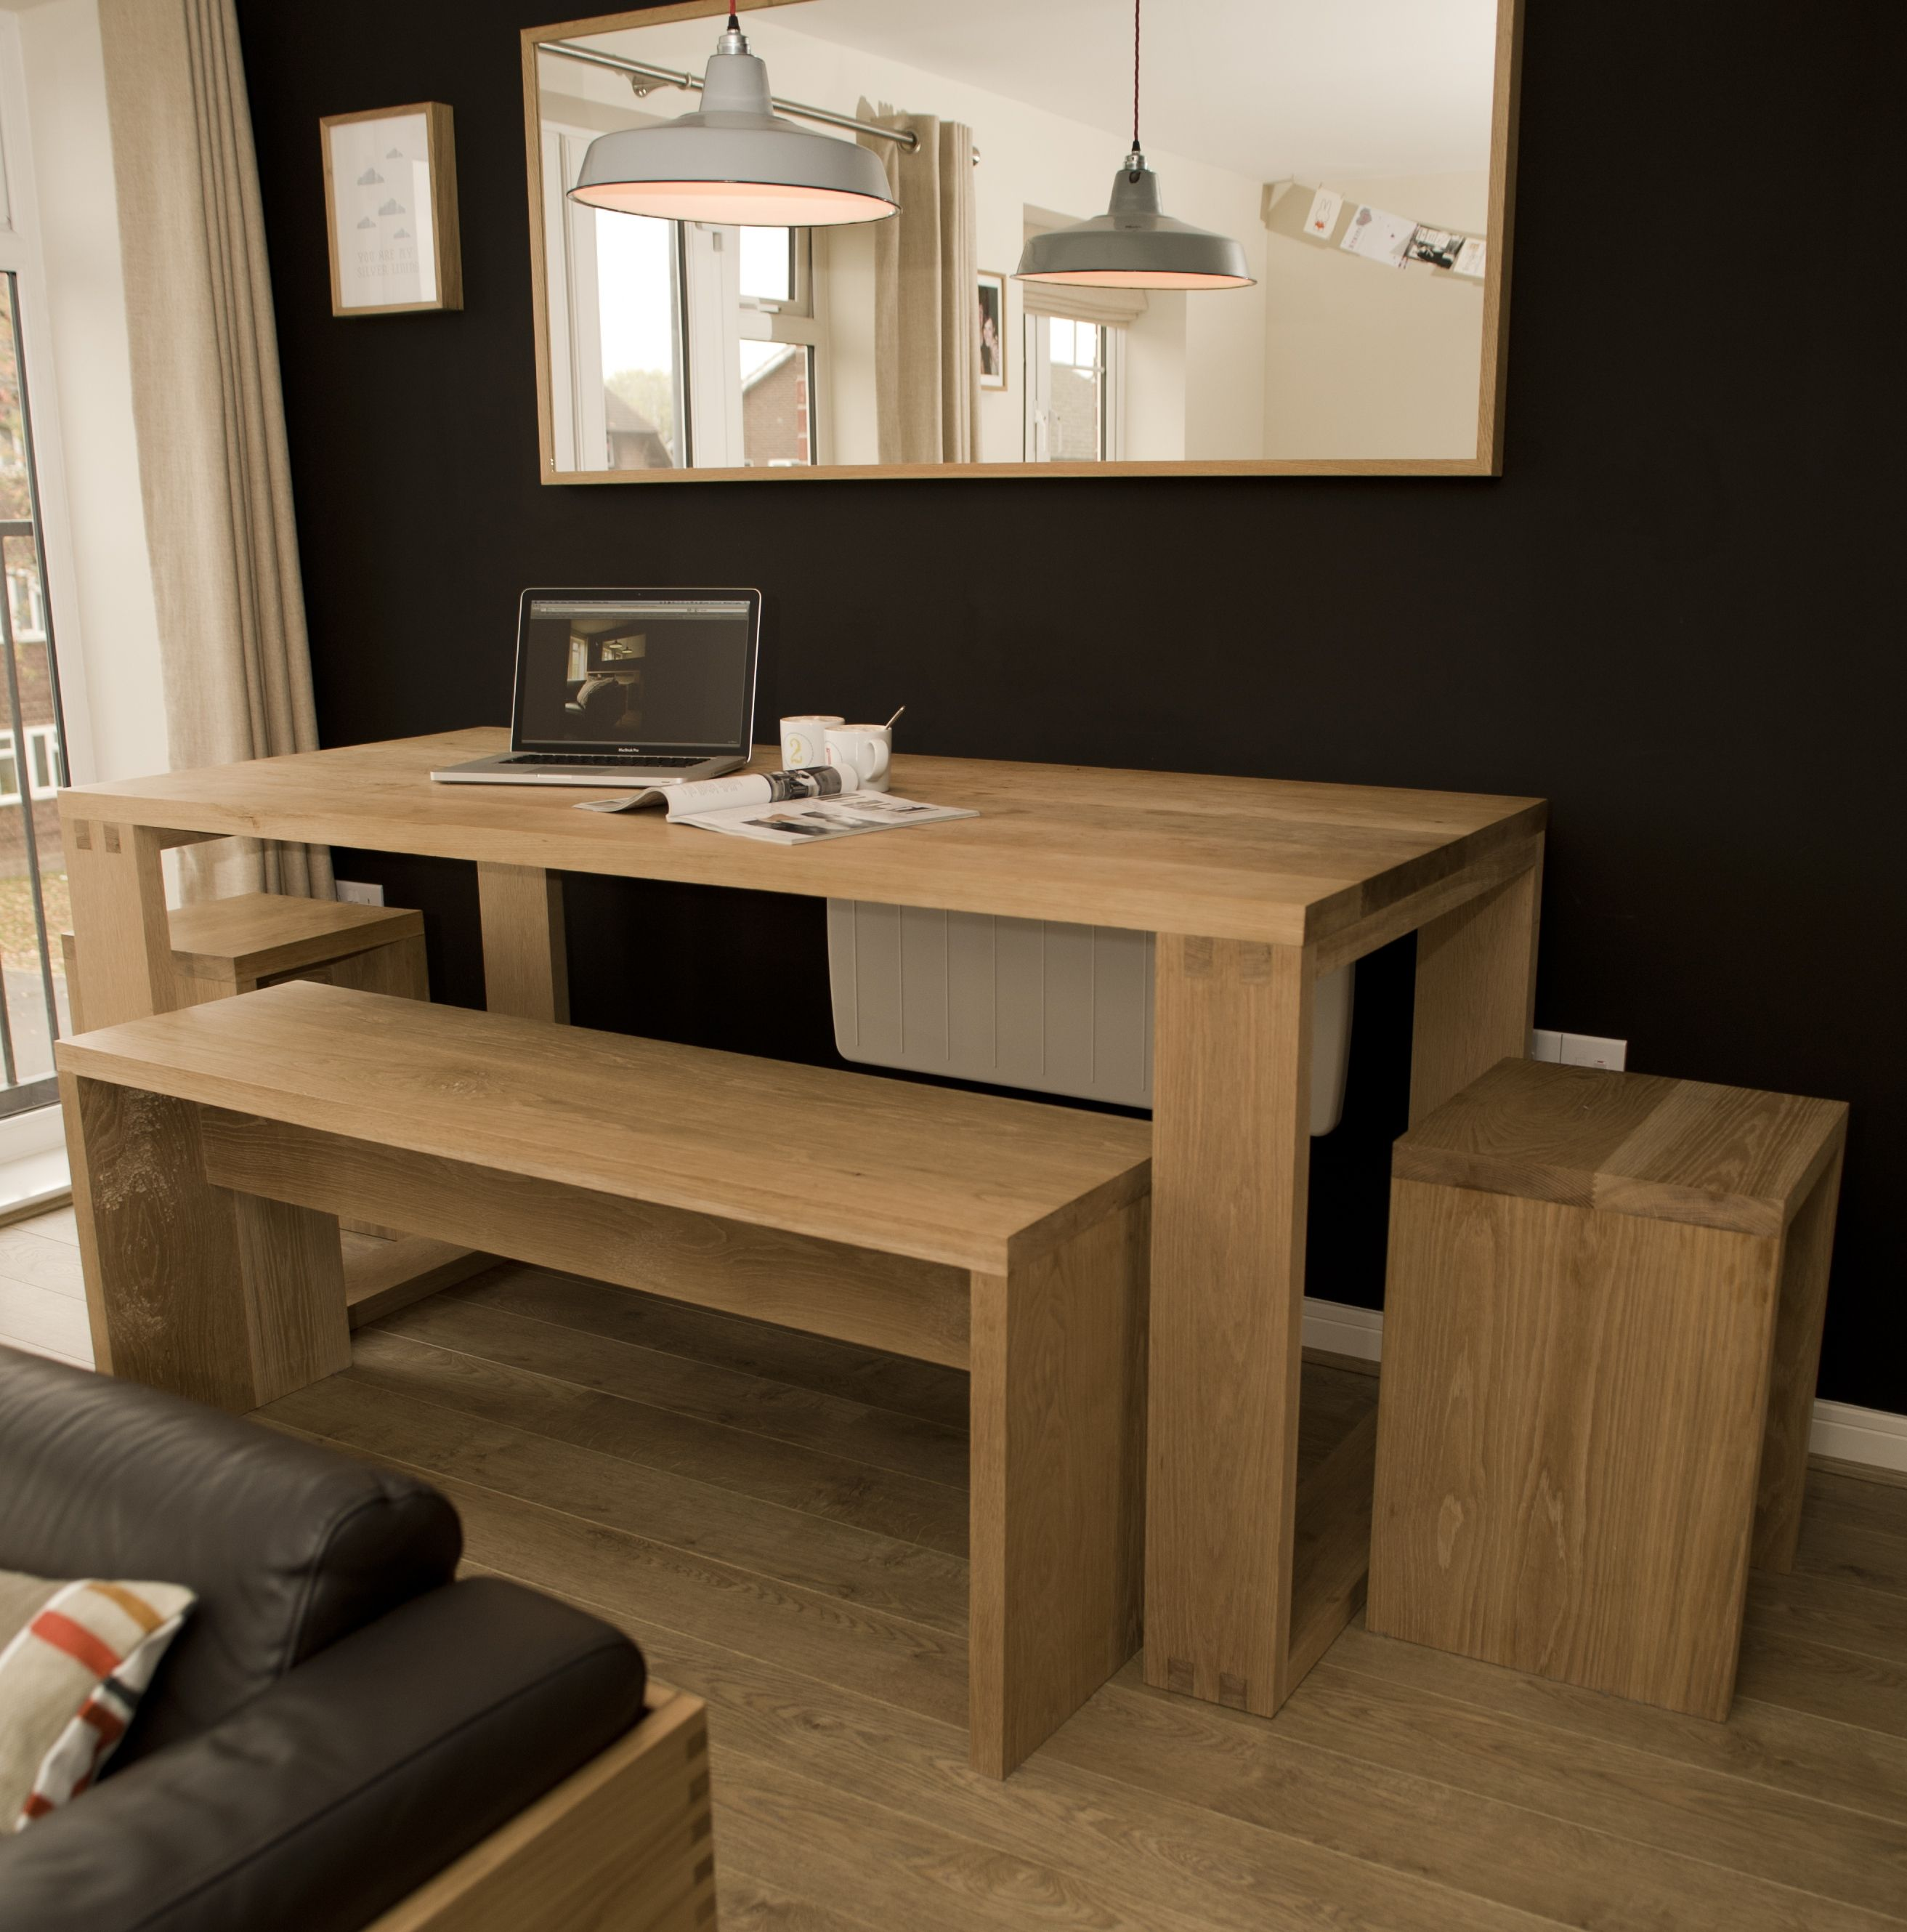 Image Result For Dining Table Against Wall Unique Dining Room Unique Dining Room Table Dining Table With Bench